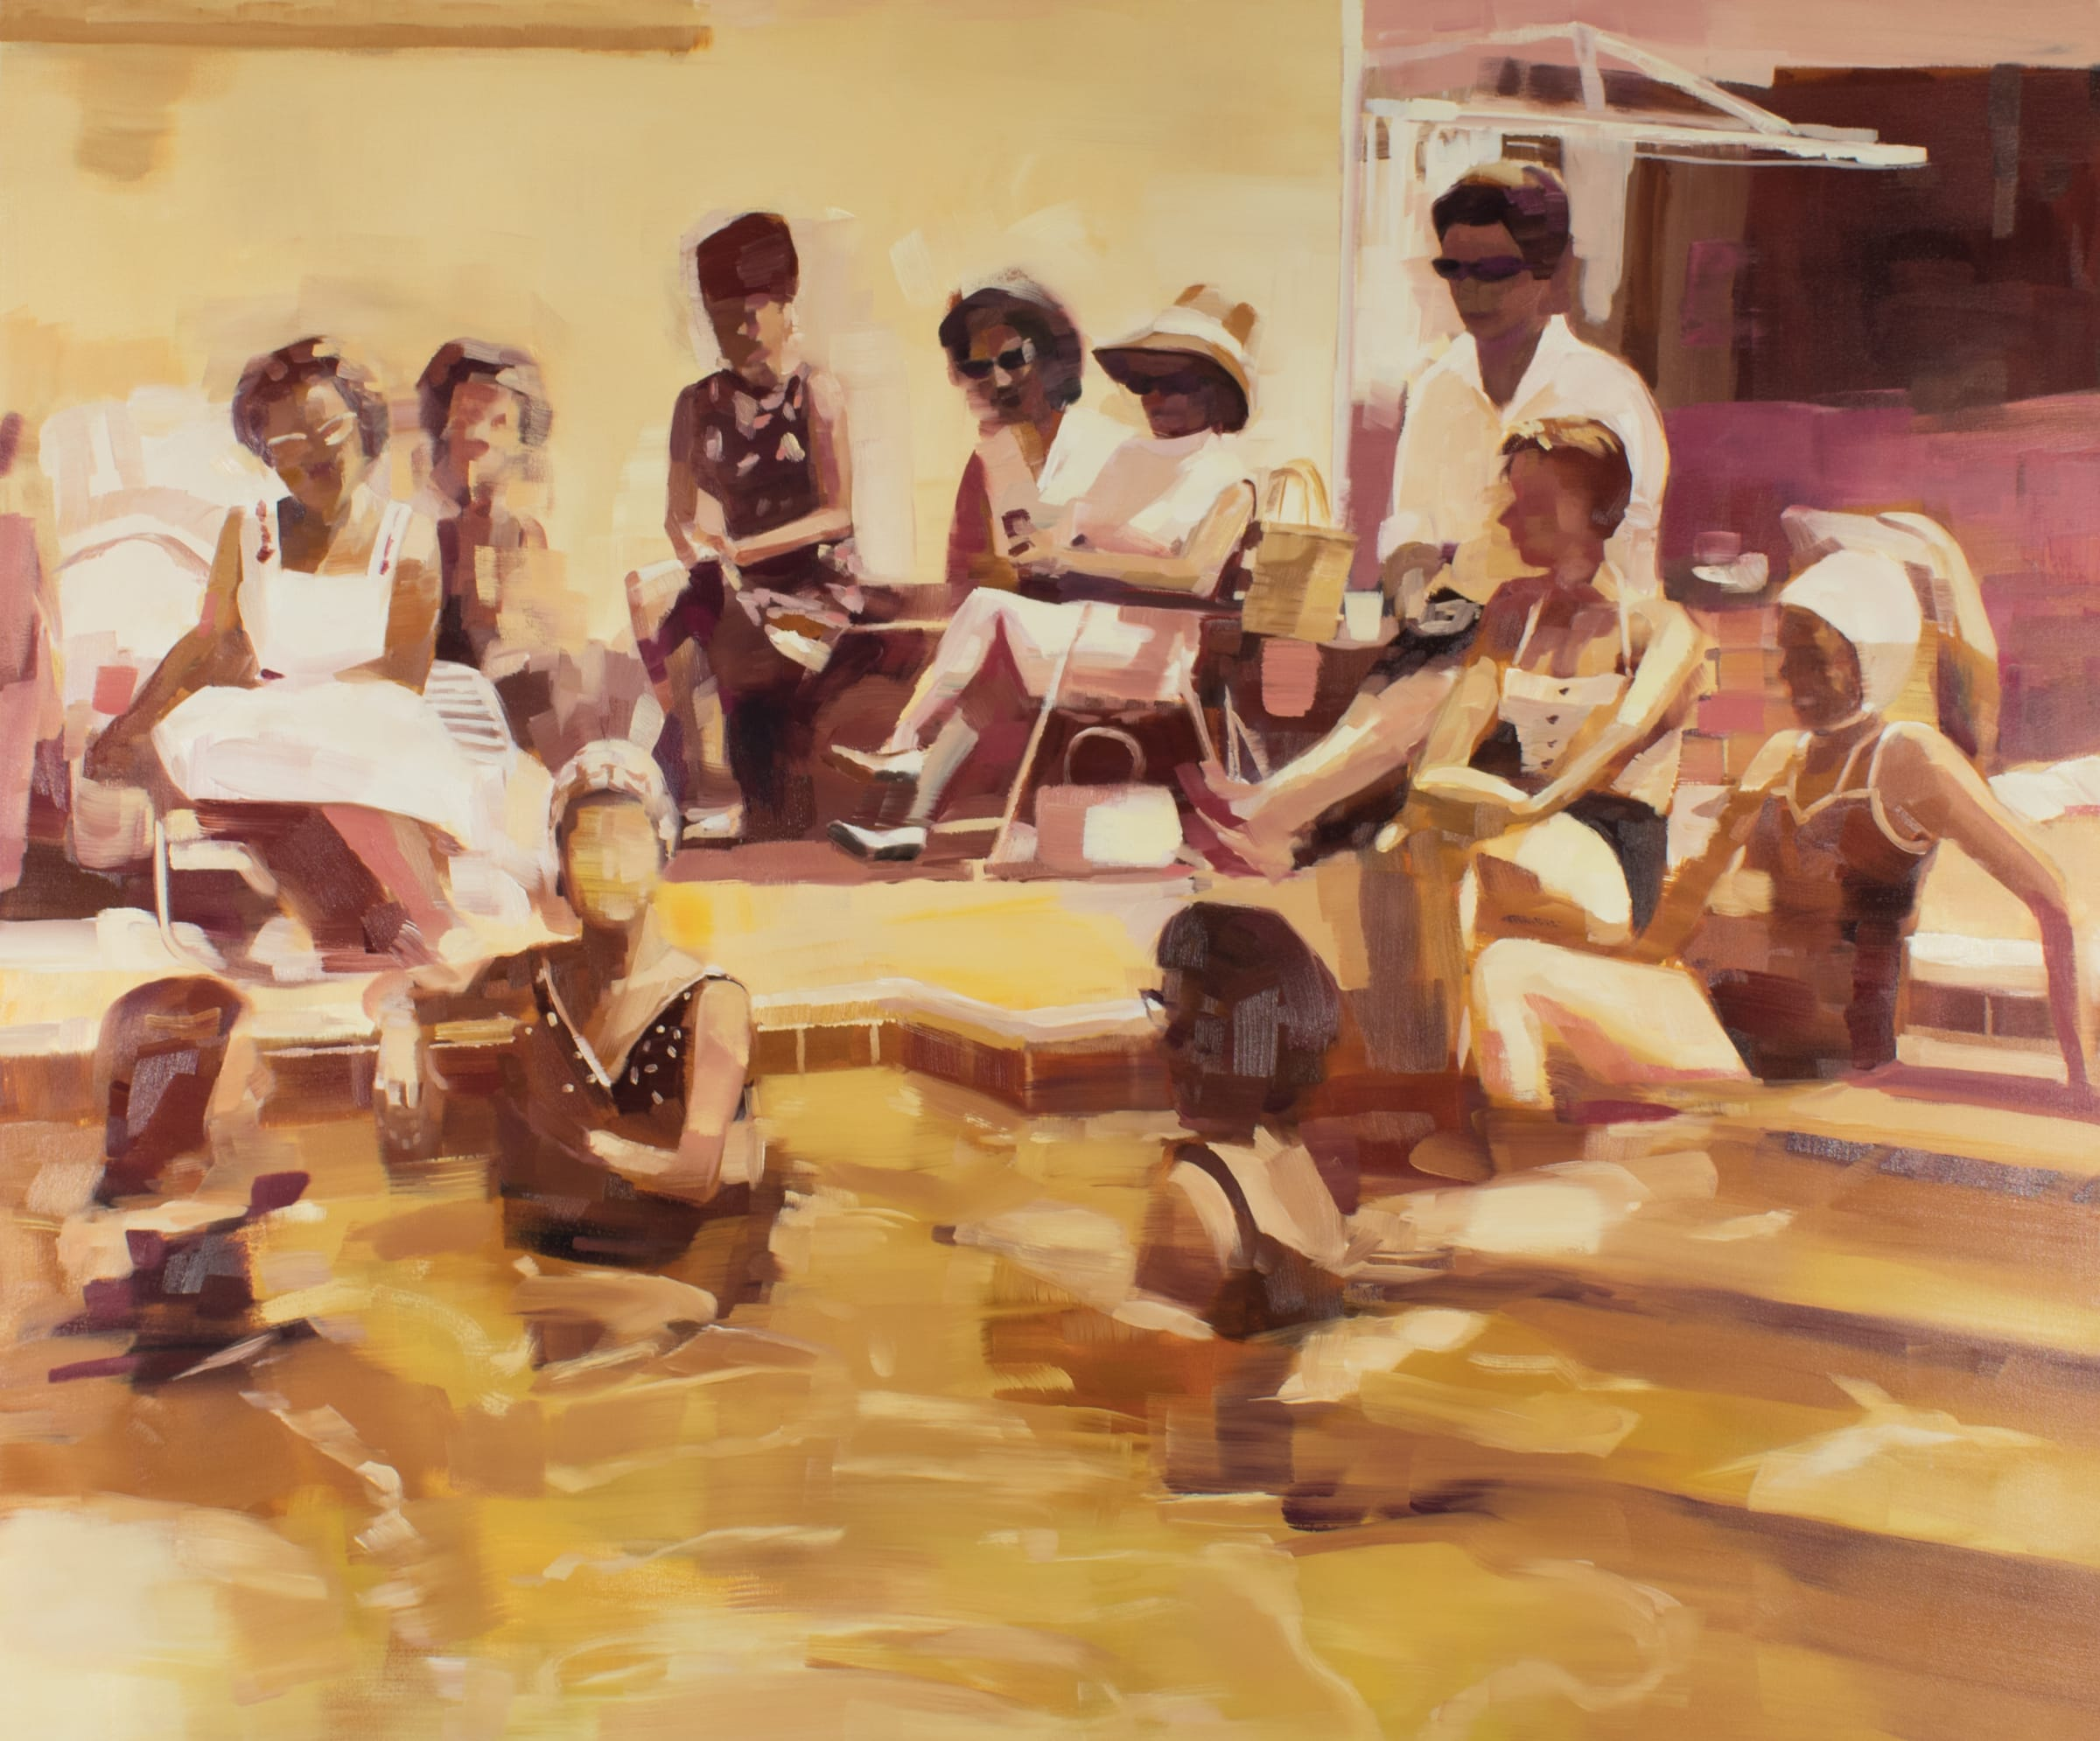 "<span class=""link fancybox-details-link""><a href=""/artists/89-kirsten-tradowsky/works/1237-kirsten-tradowsky-ladies-lounging-poolside-1960/"">View Detail Page</a></span><div class=""artist""><strong>Kirsten Tradowsky</strong></div> <div class=""title""><em>Ladies Lounging Poolside, 1960</em></div> <div class=""medium"">Oil on canvas</div> <div class=""dimensions"">50 x 60 inches</div>"